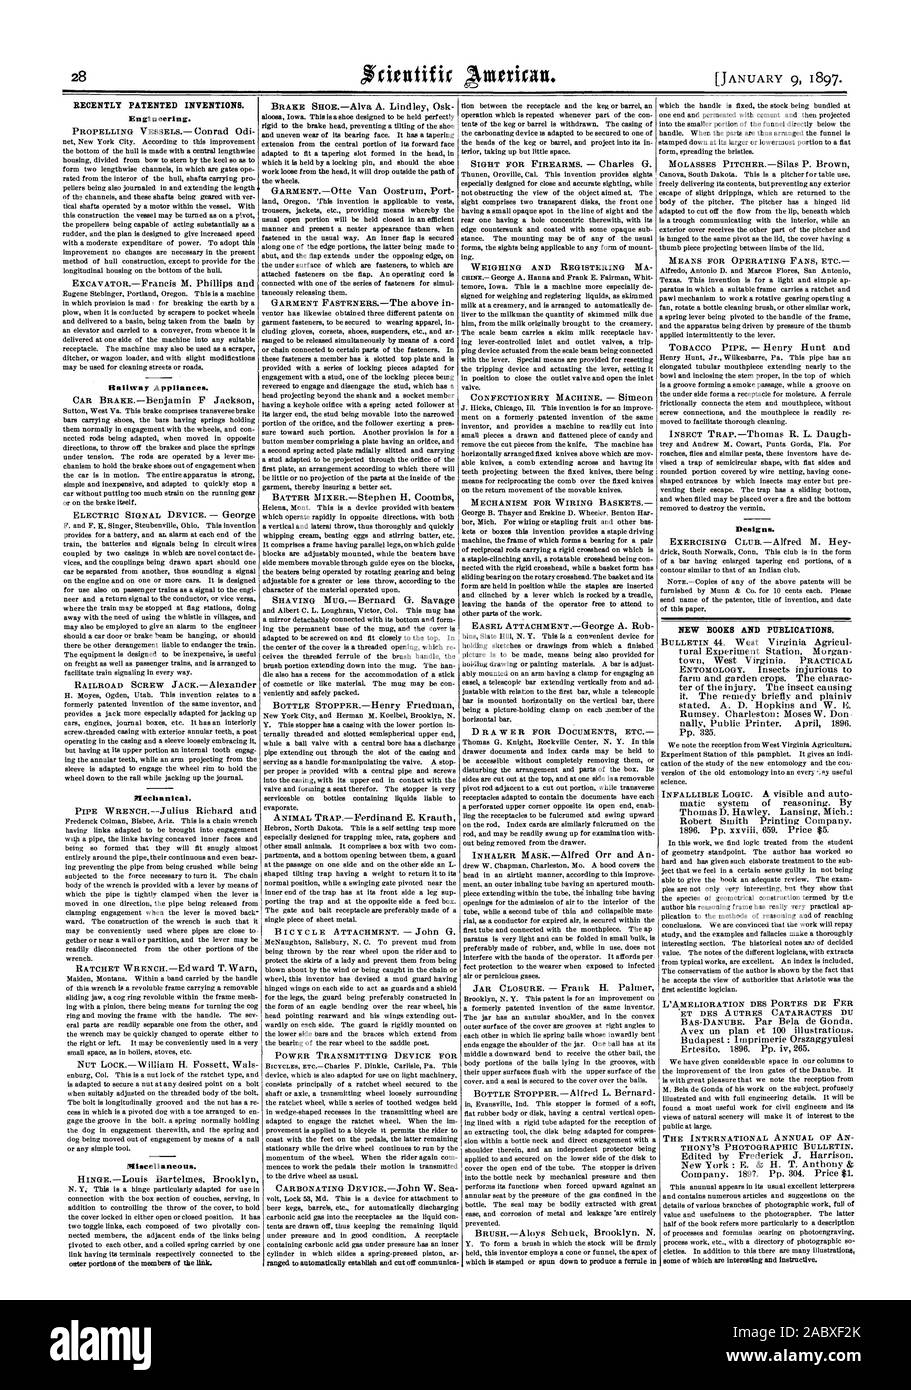 RECENTLY PATENTED INVENTIONS. Engineering. Railway Appliances. Mechanical. Miscellaneous. Designs. NEW BOOKS AND PUBLICATIONS., scientific american, 1897-01-11 Stock Photo